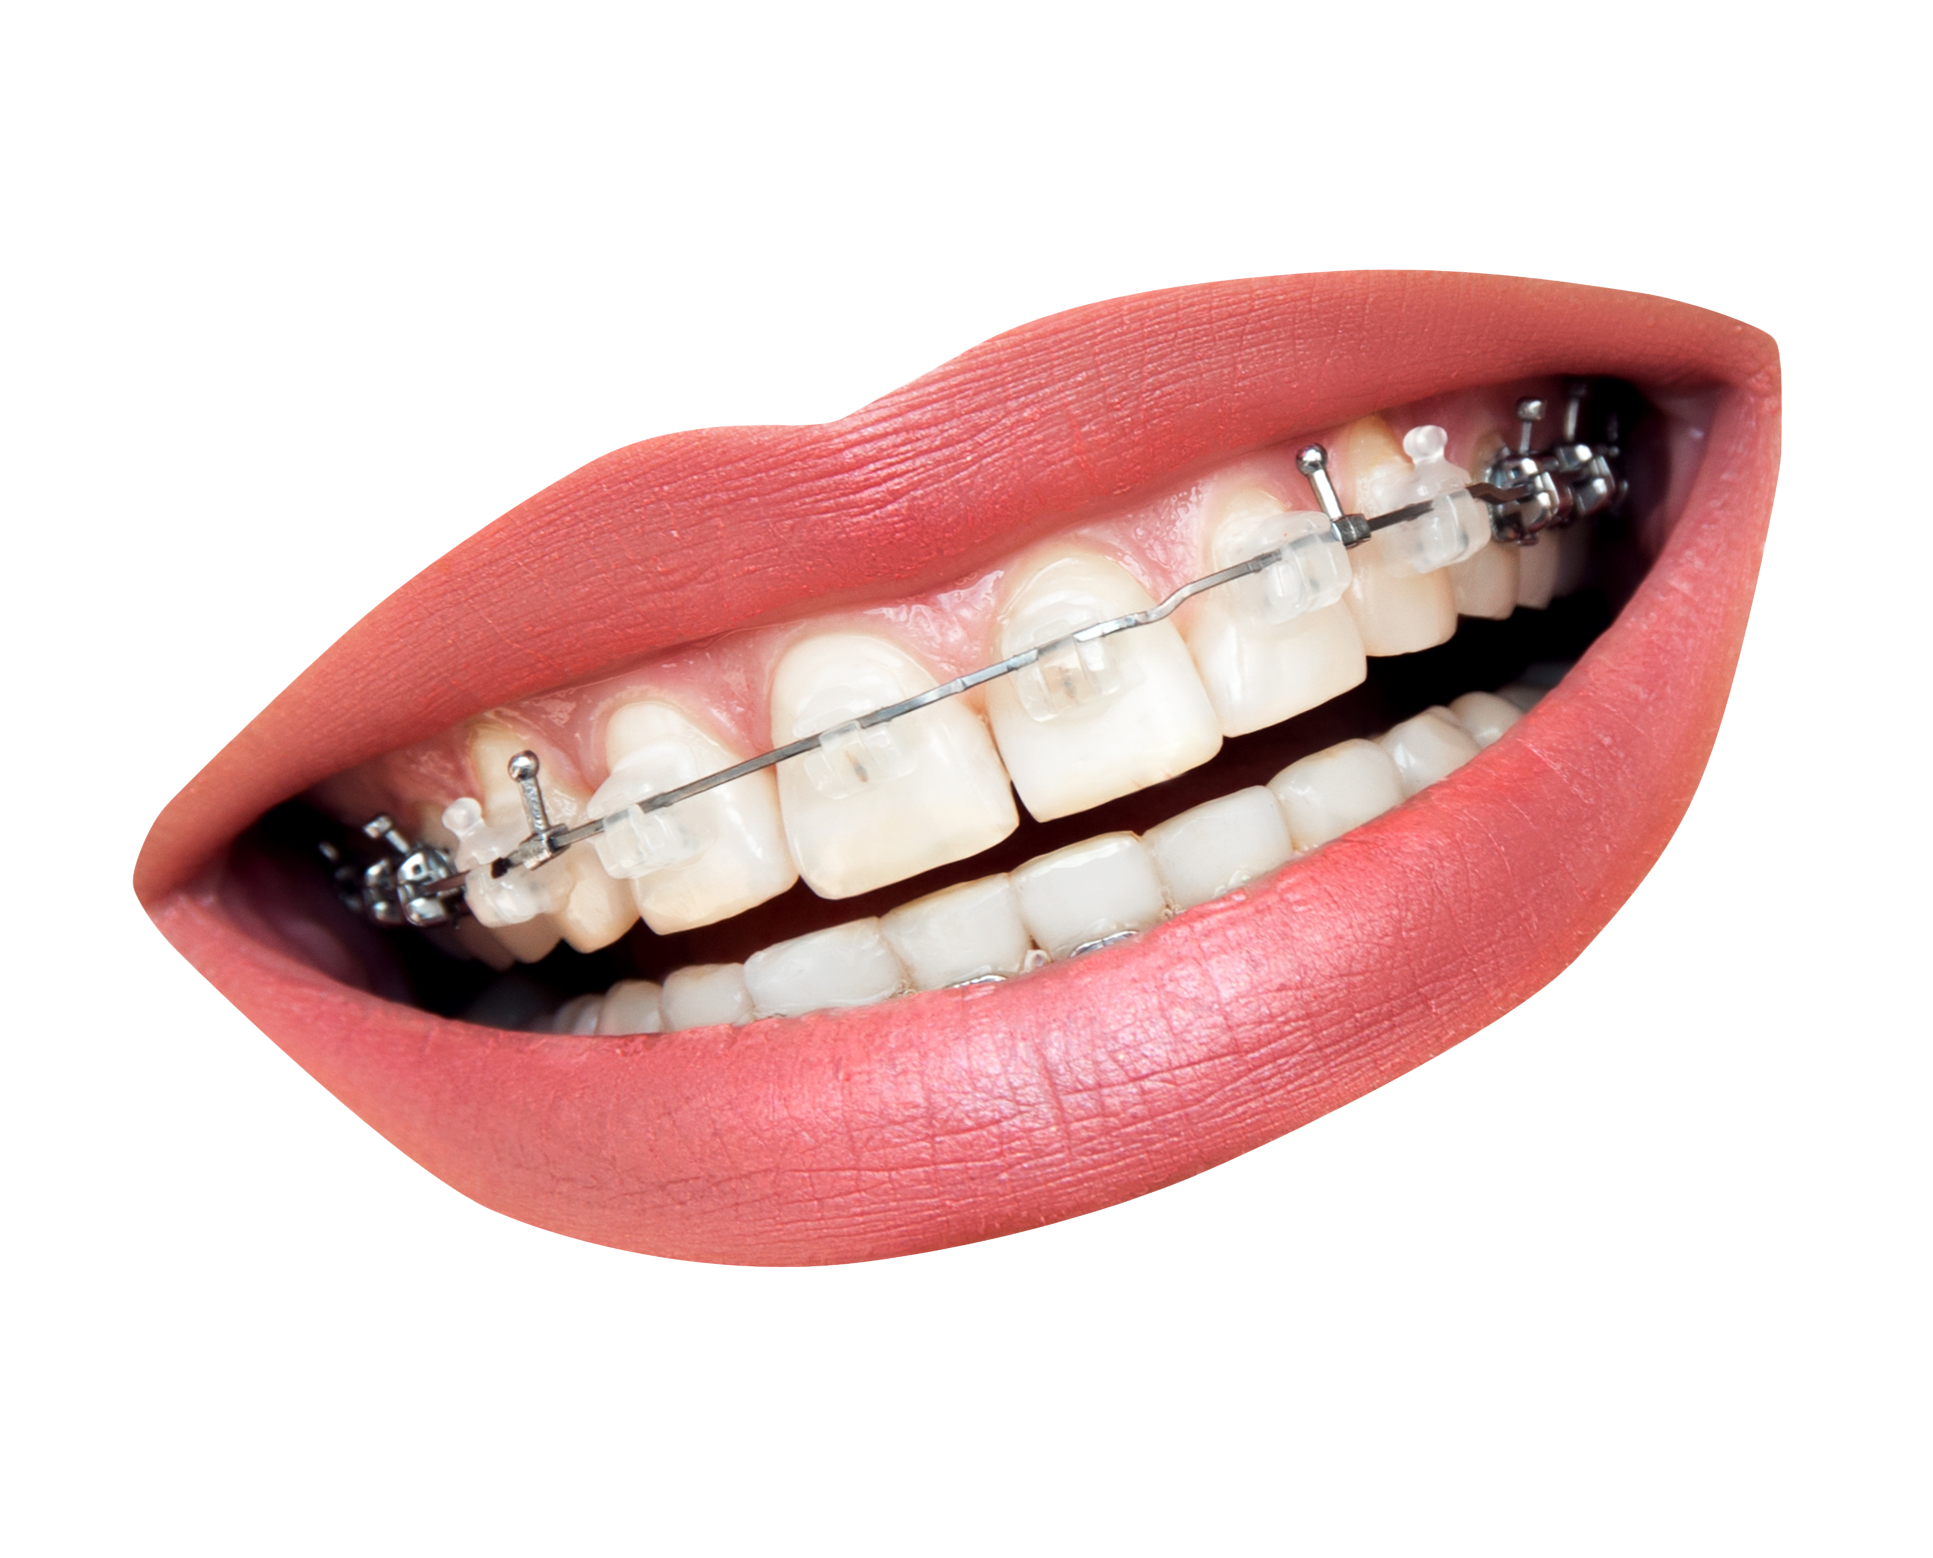 kisspng-dental-braces-dentistry-orthodontics-tooth-clear-a-teeth-with-braces-5a72963b44a719.5935776215174590032812